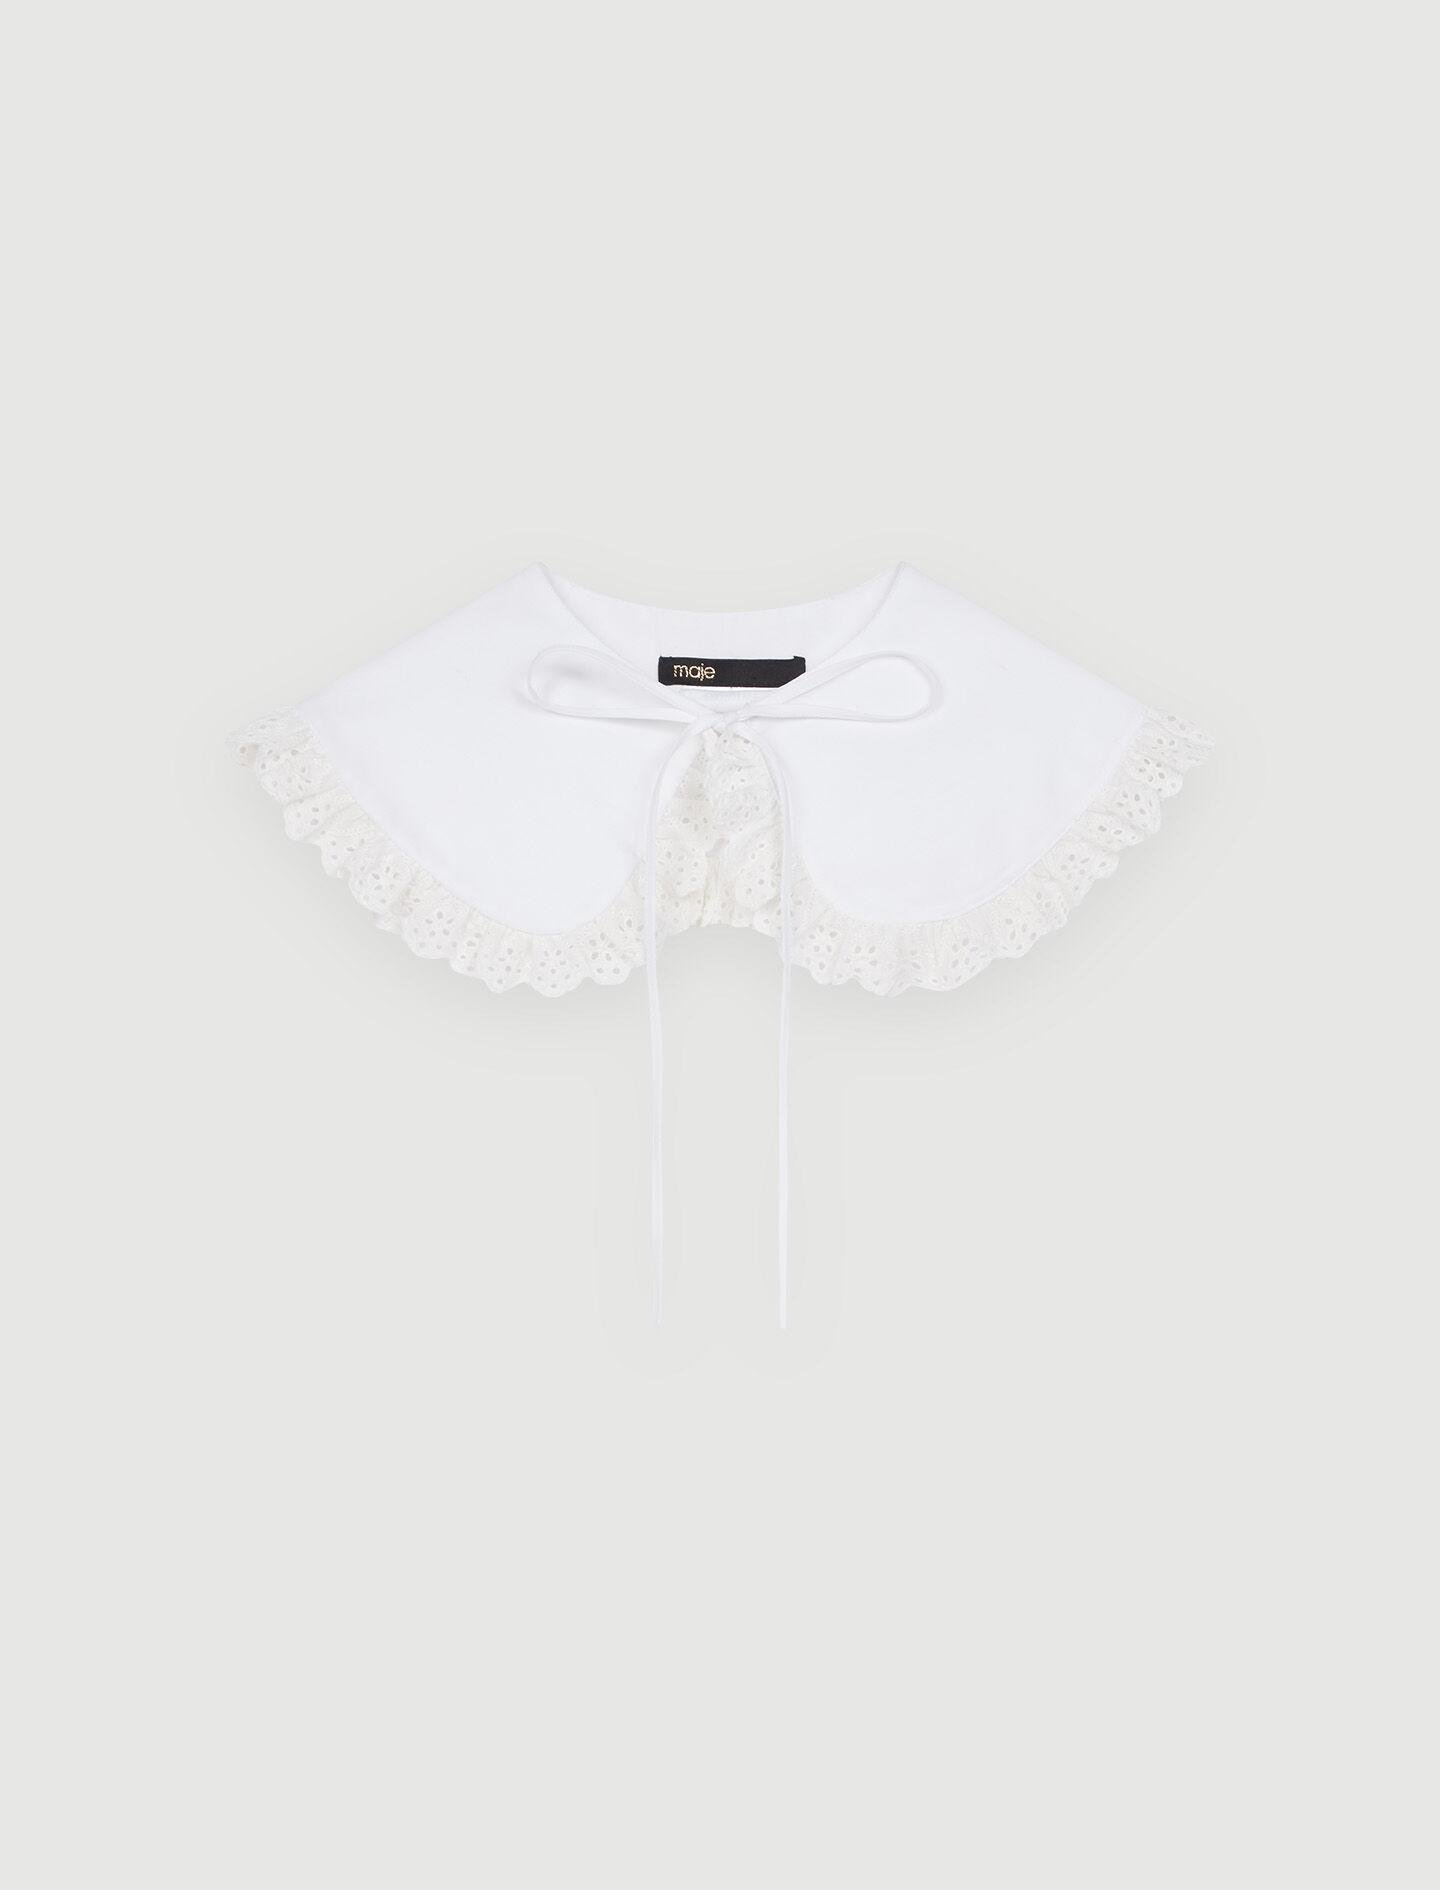 EMBROIDERED COTTON PETER PAN COLLAR